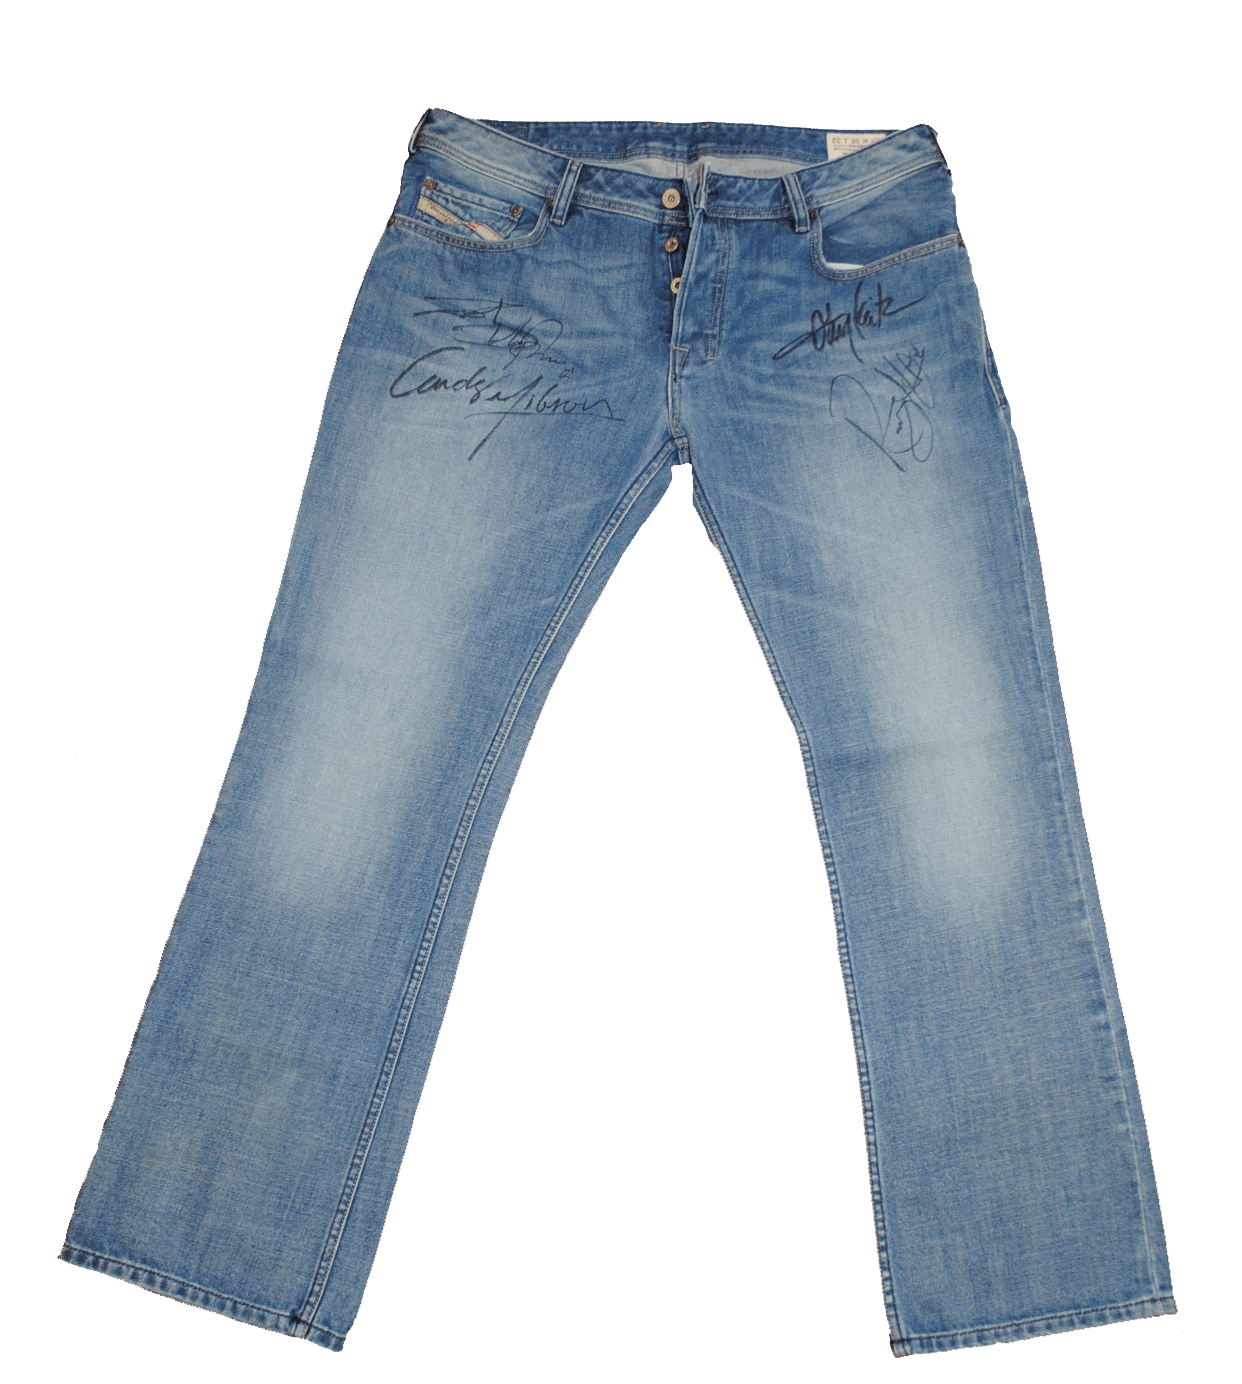 Blue Jeans Png Image PNG Image